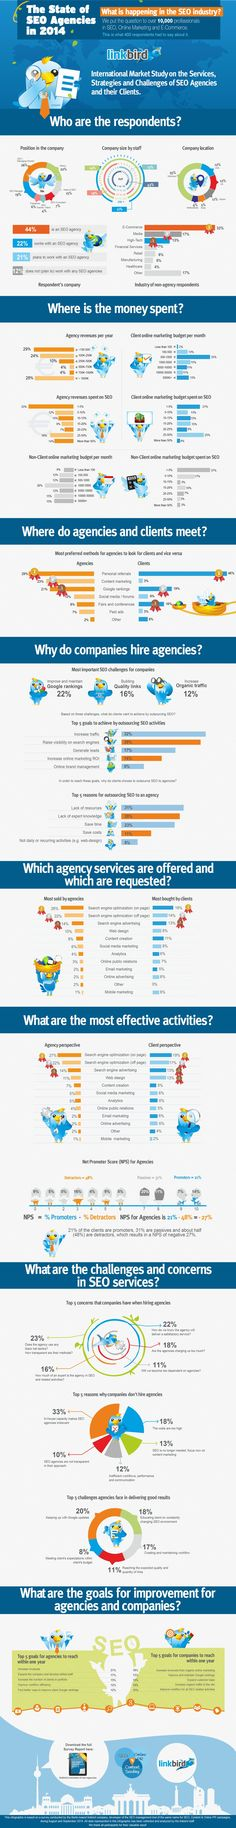 12 Key Takeaways from the State of SEO Agencies 2014 Research #Infographic